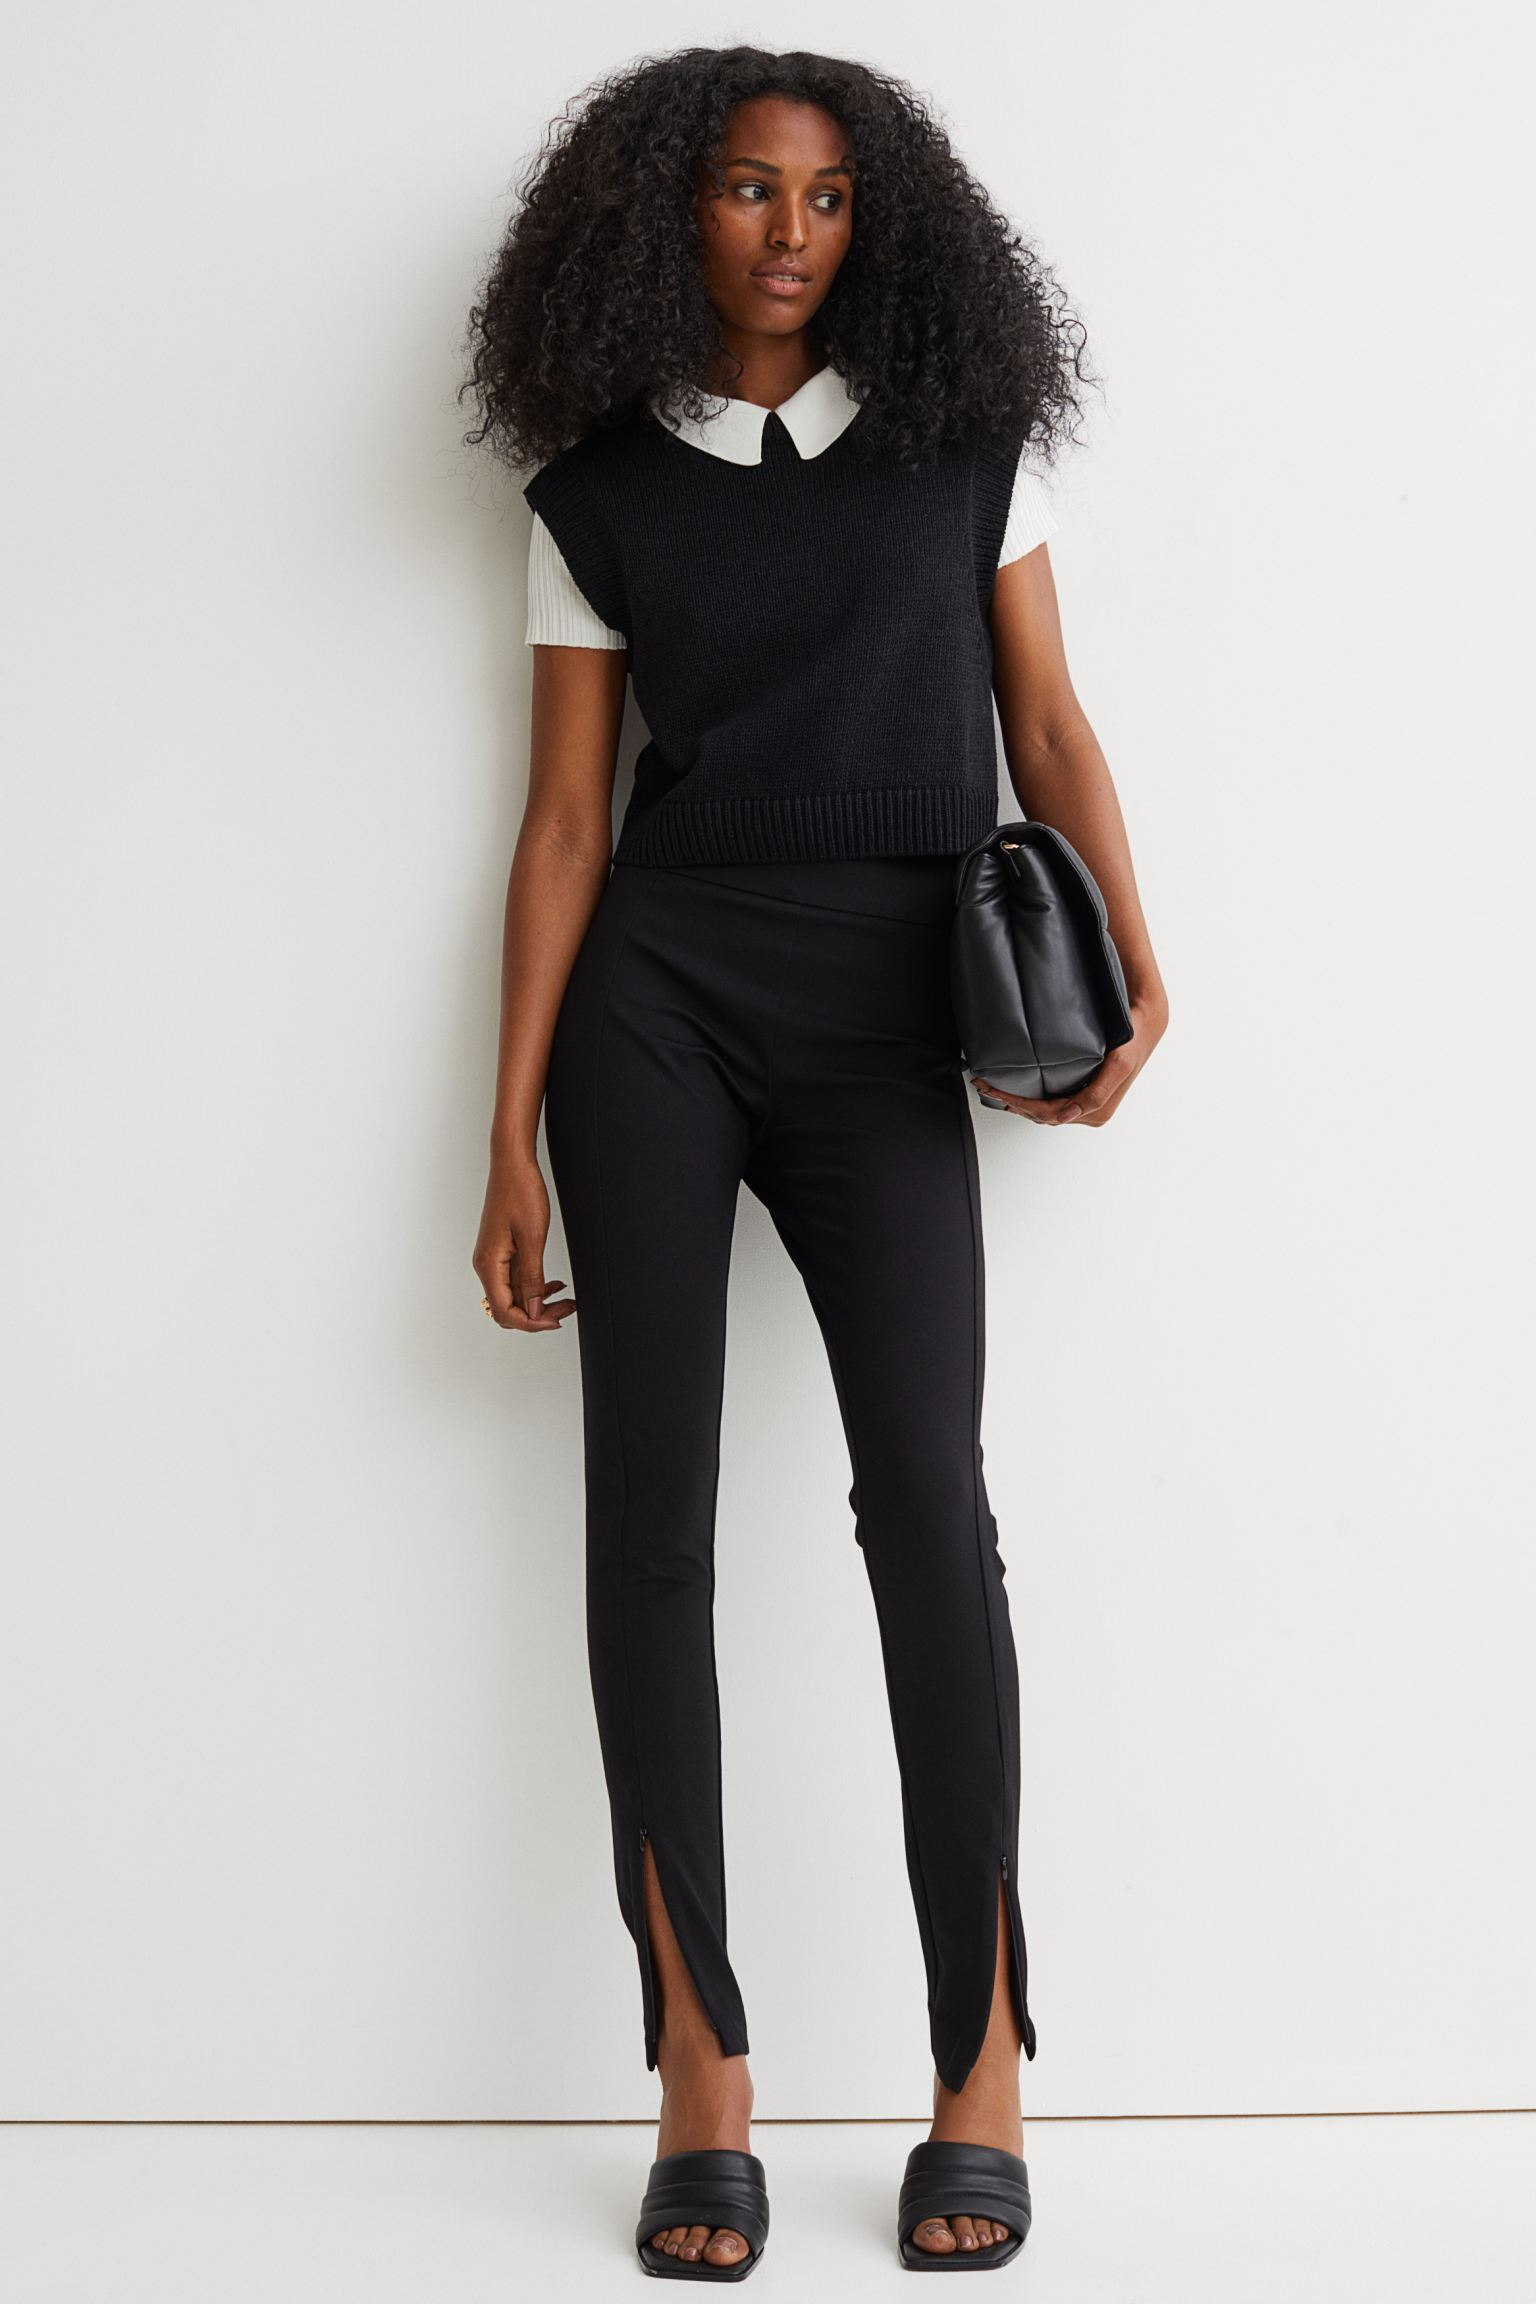 Leggings with zipper and slit at the bottom